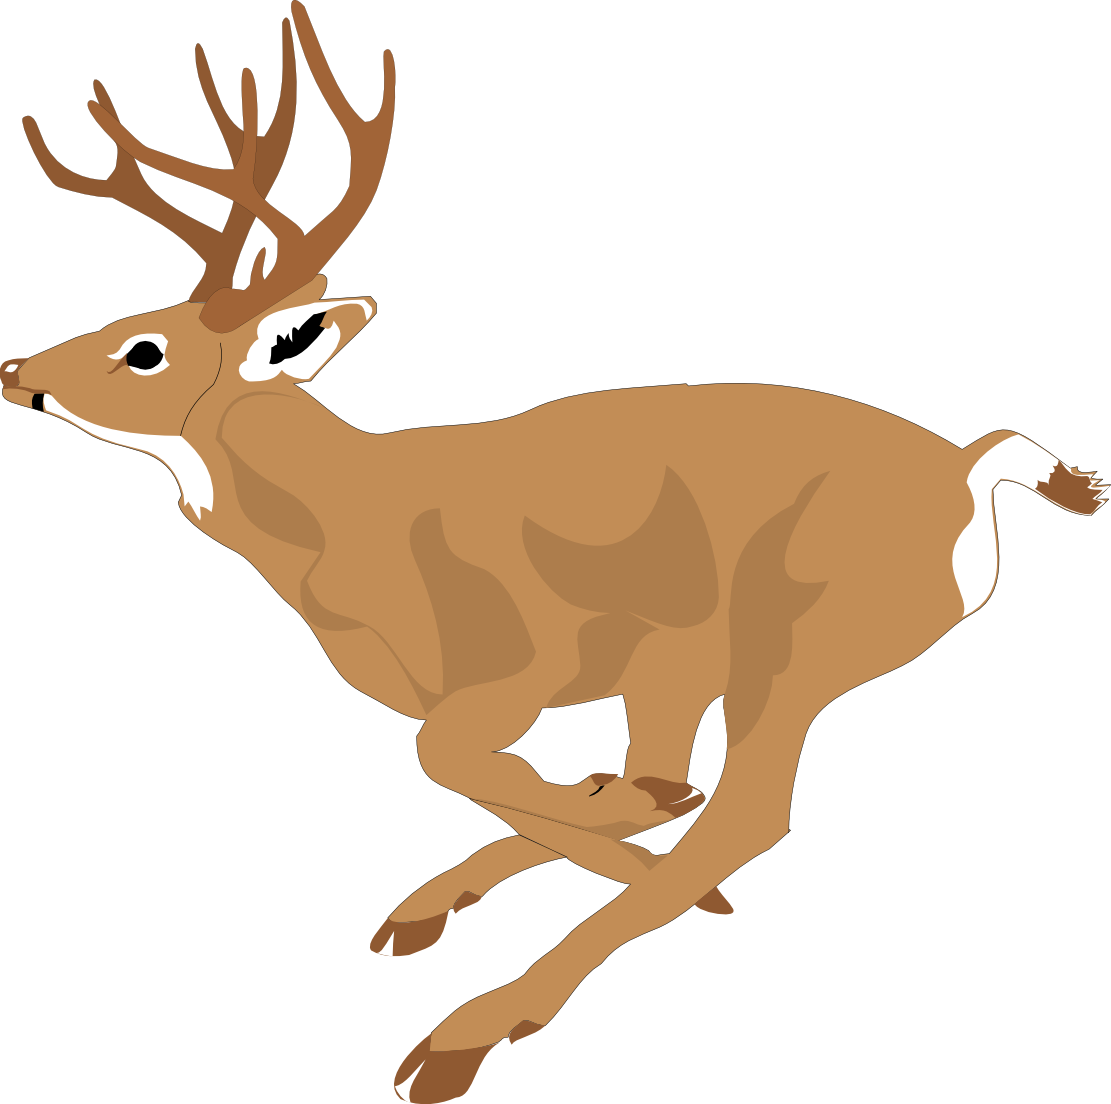 Stag vector stylized. Deer clipart free at